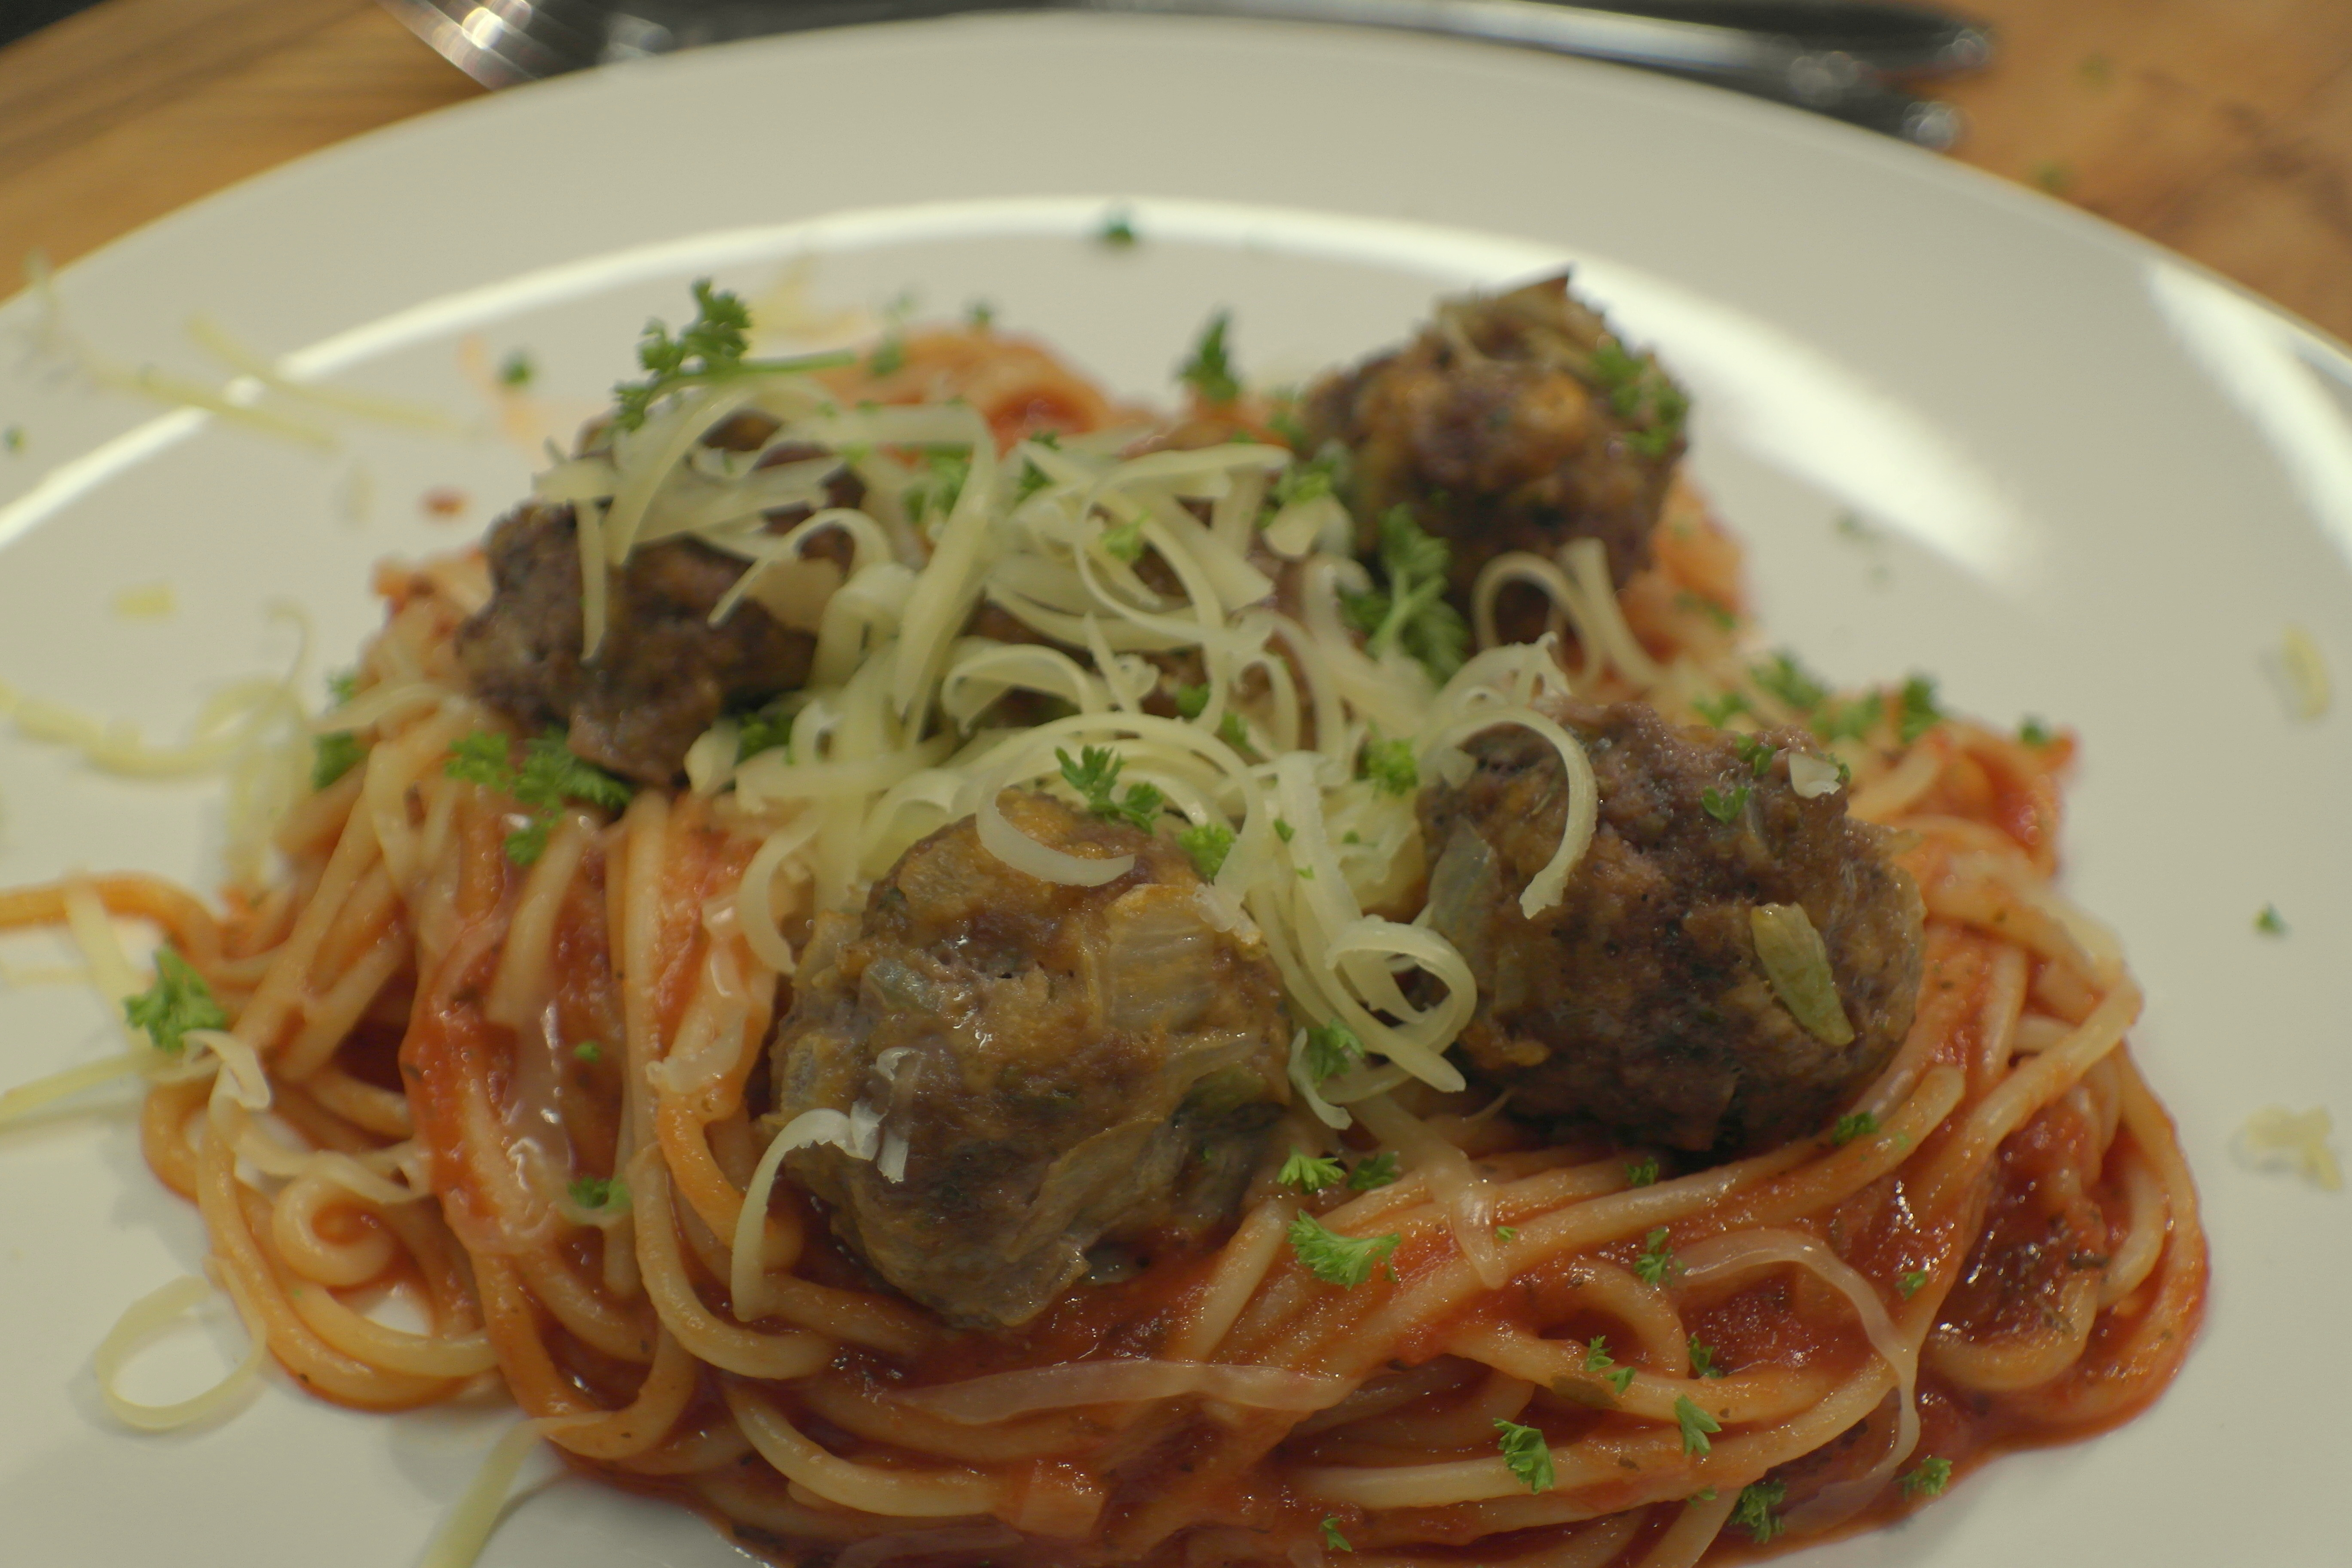 Discussion on this topic: Speedy Italian Pasta and Meatballs, speedy-italian-pasta-and-meatballs/